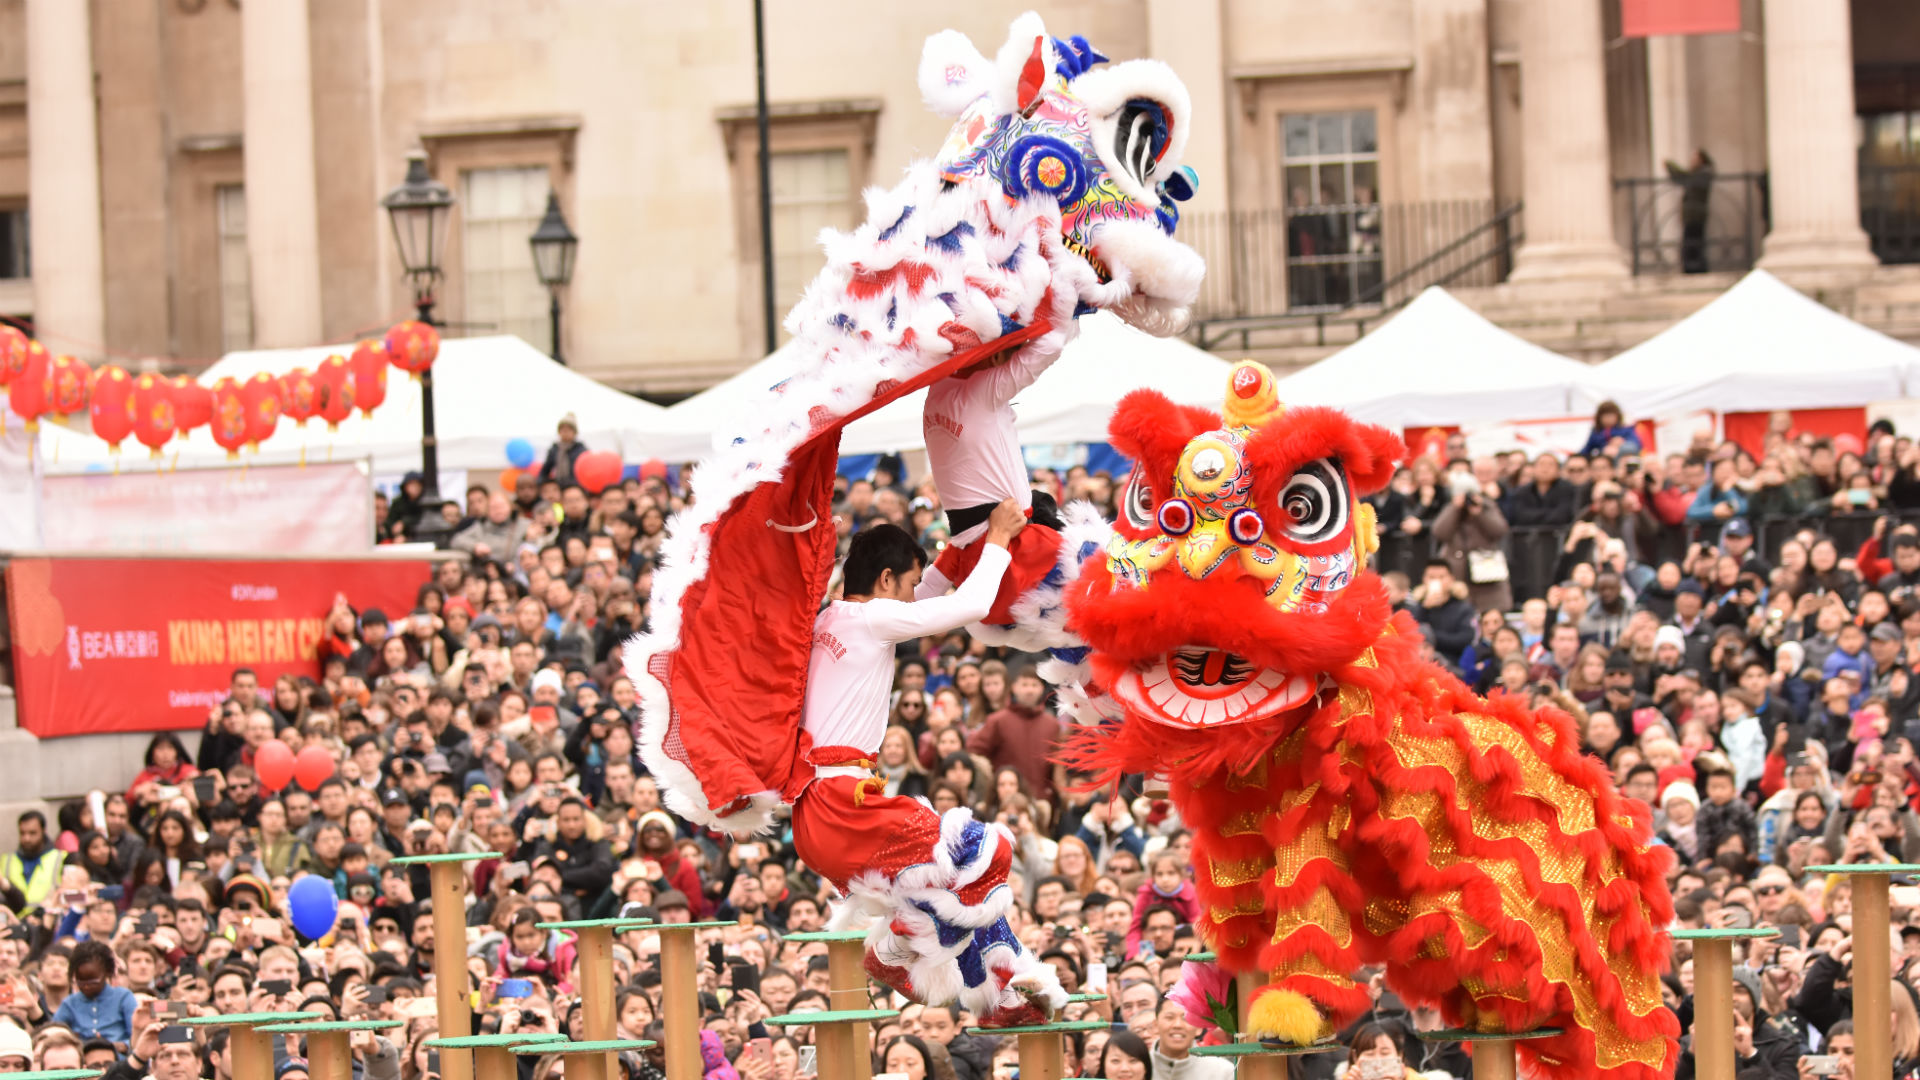 About Chinese New Year in London - visitlondon.com